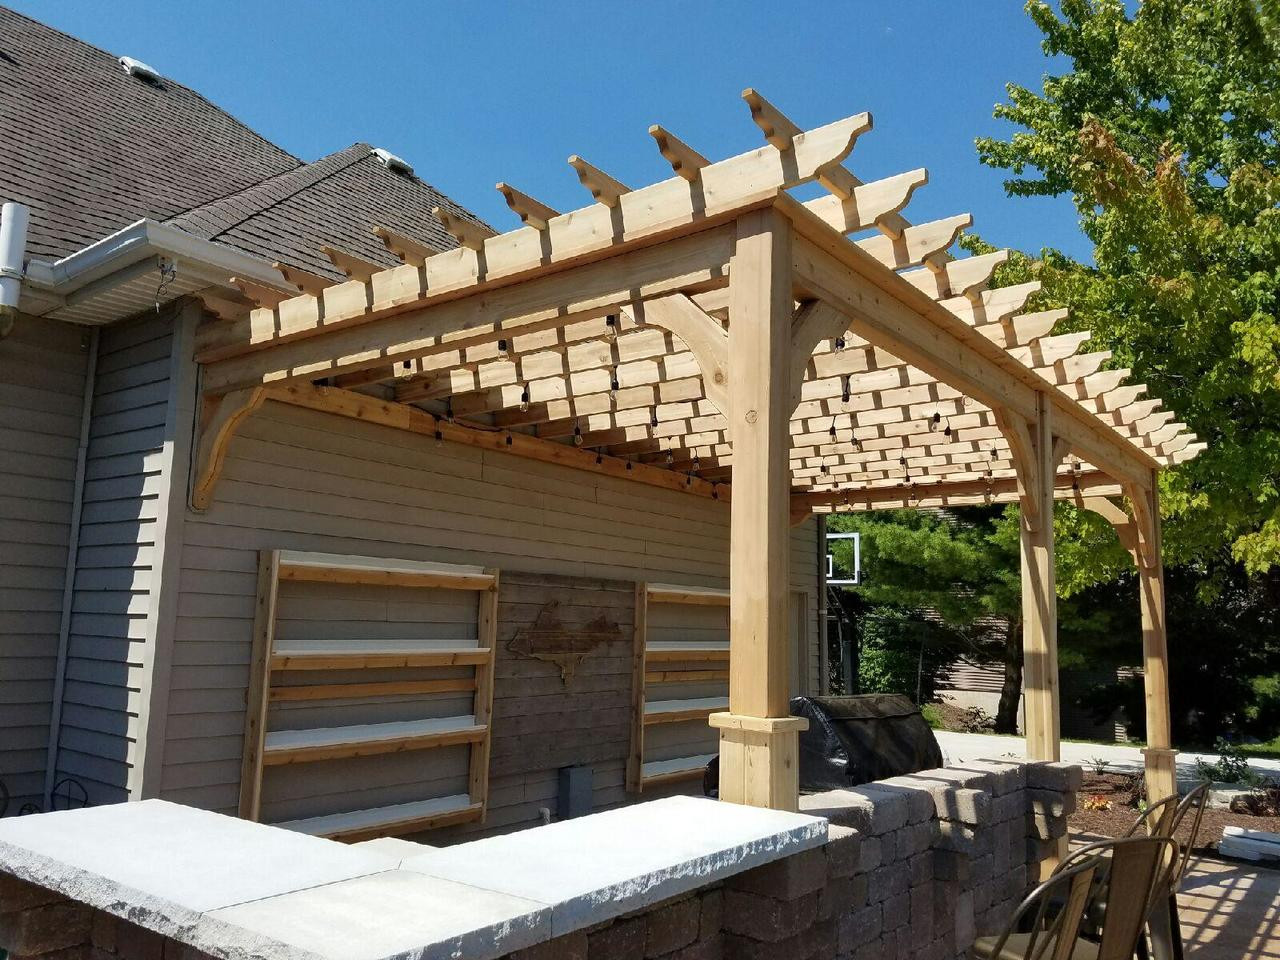 - Attached Pergola Kits Wester Red Cedar Any And All Sizes